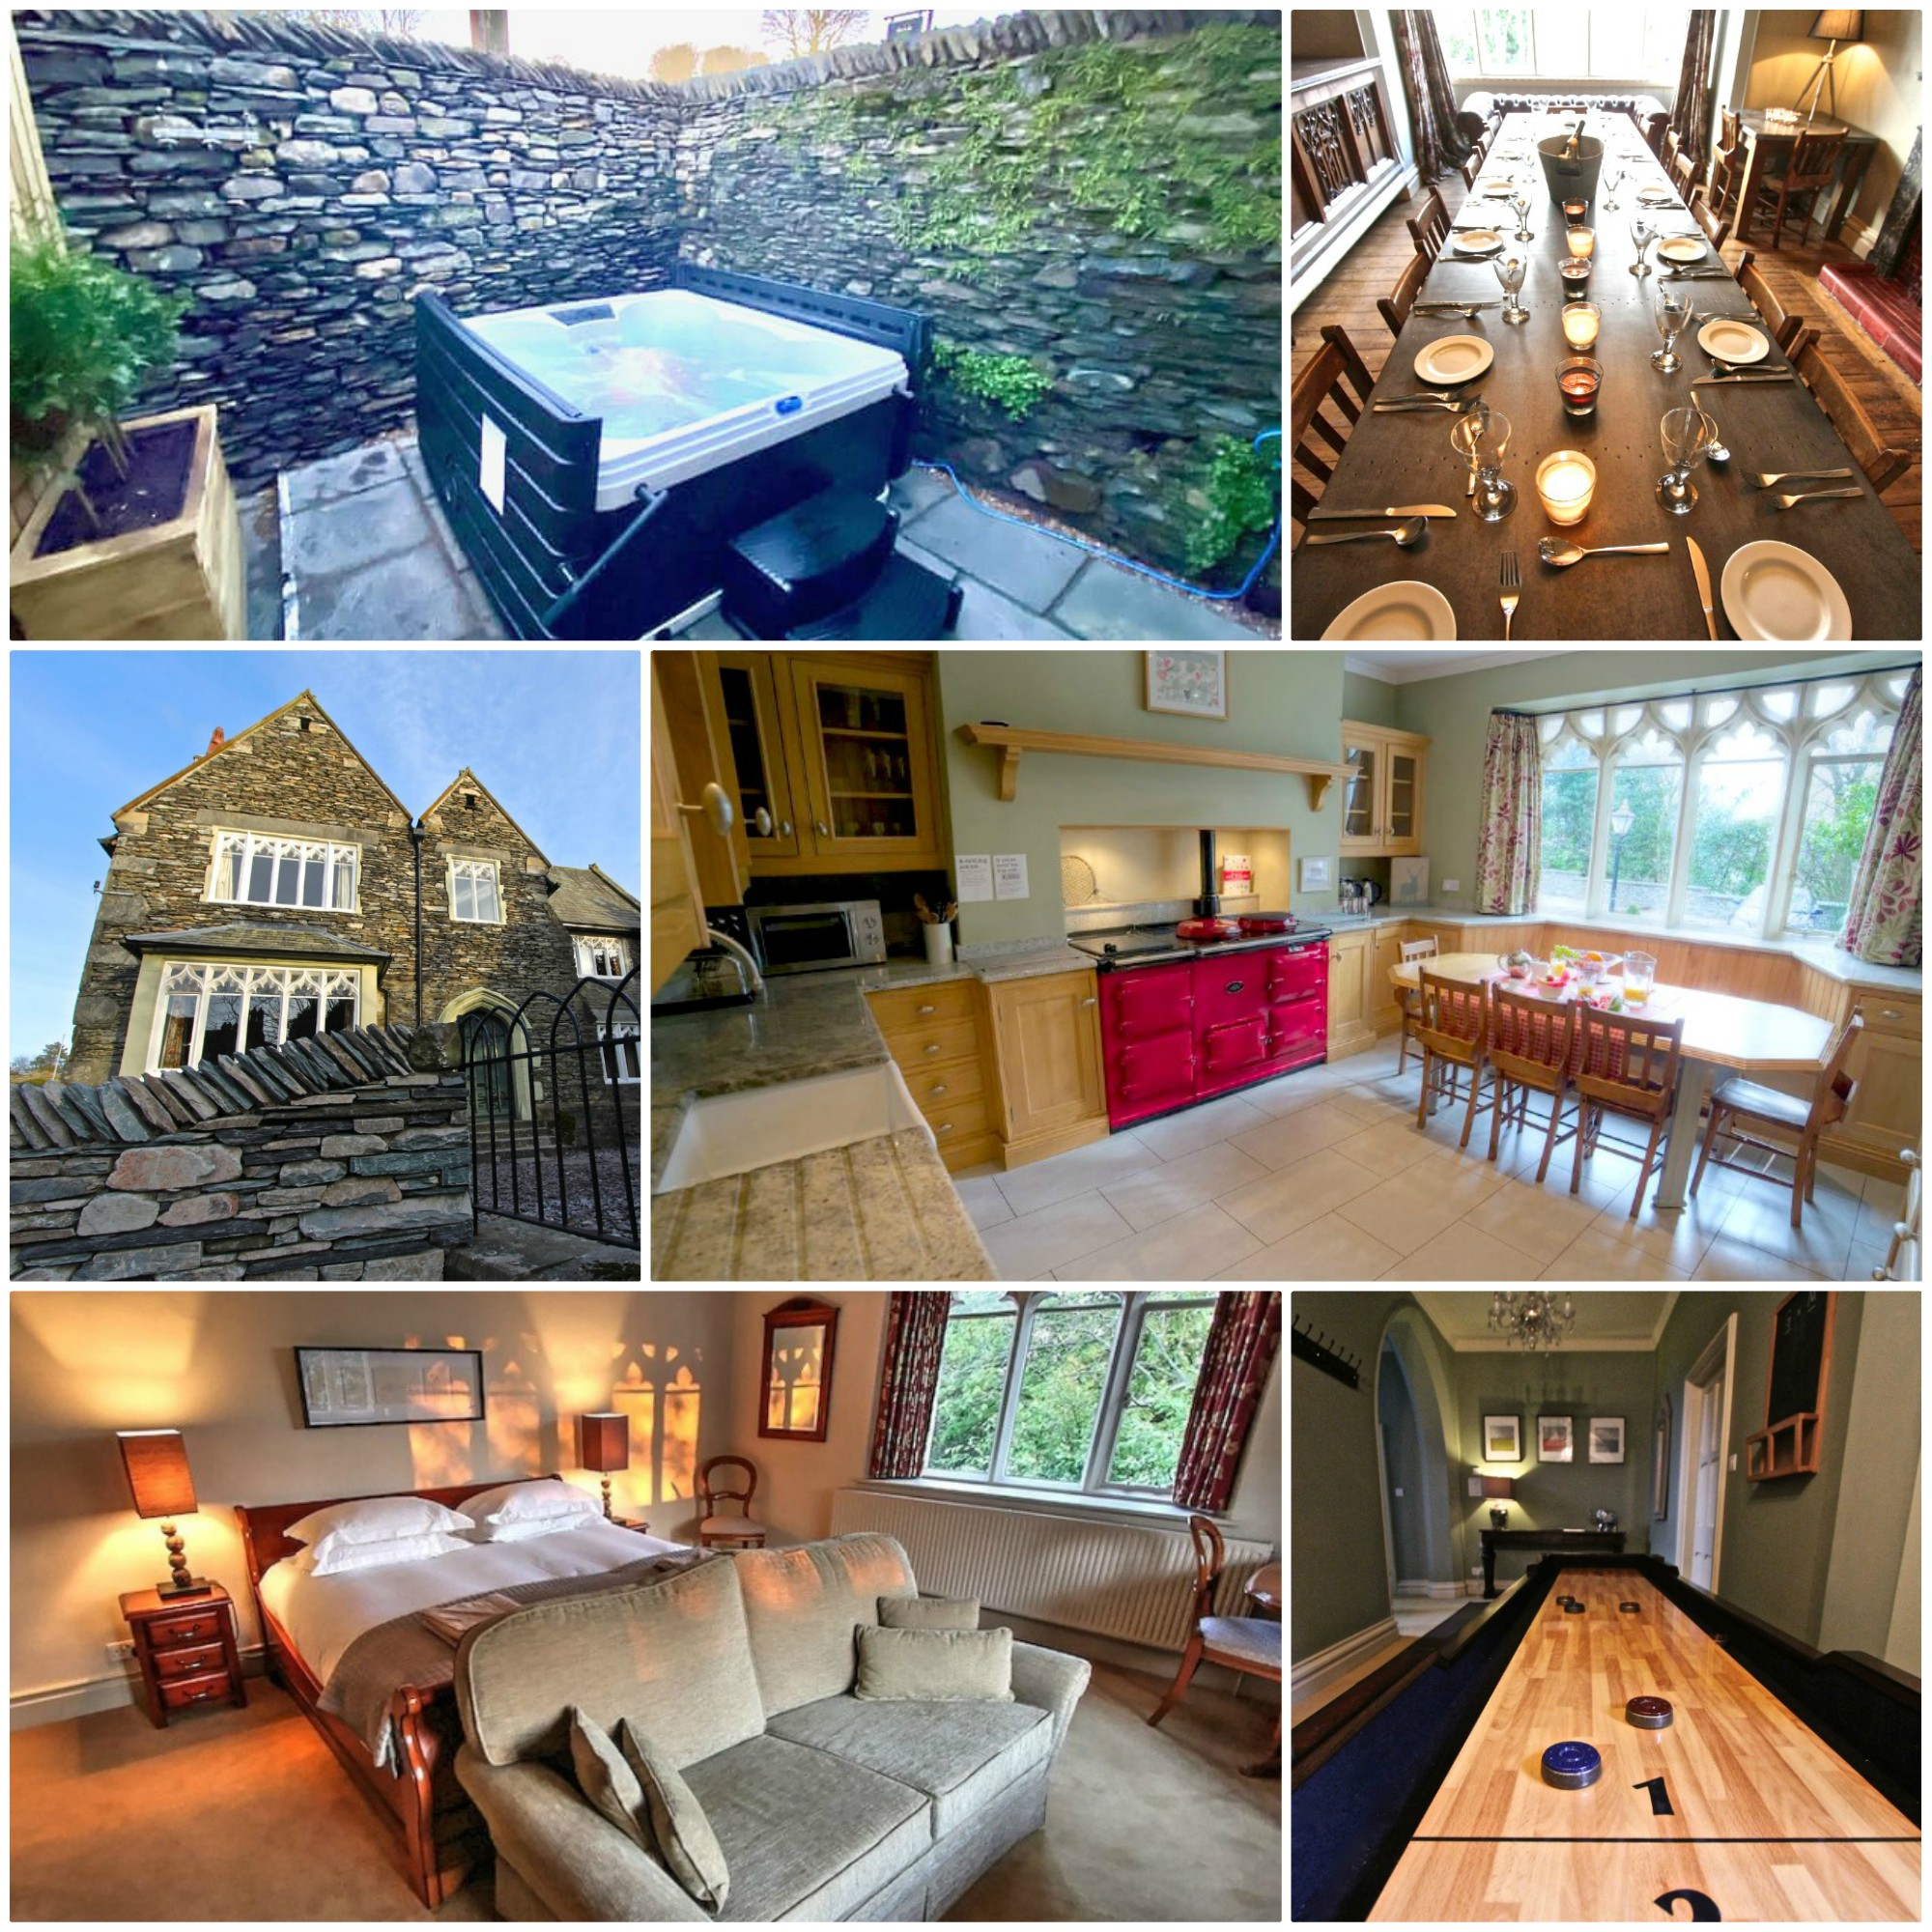 pet friendly Gold award winning large holiday home in Windermere